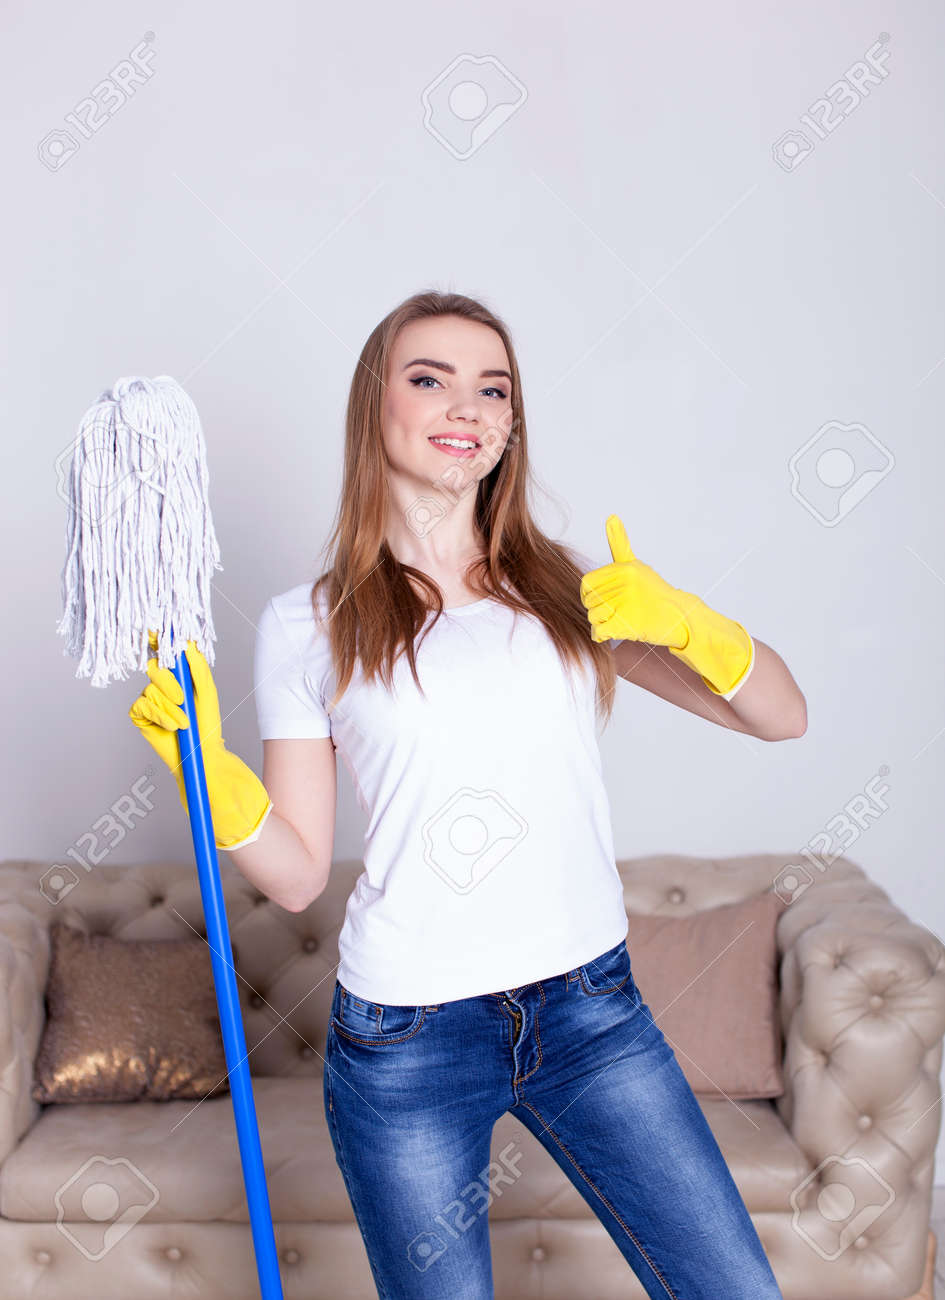 Portrait of happy young woman doing chores cleaning home with floor mop - 74940932